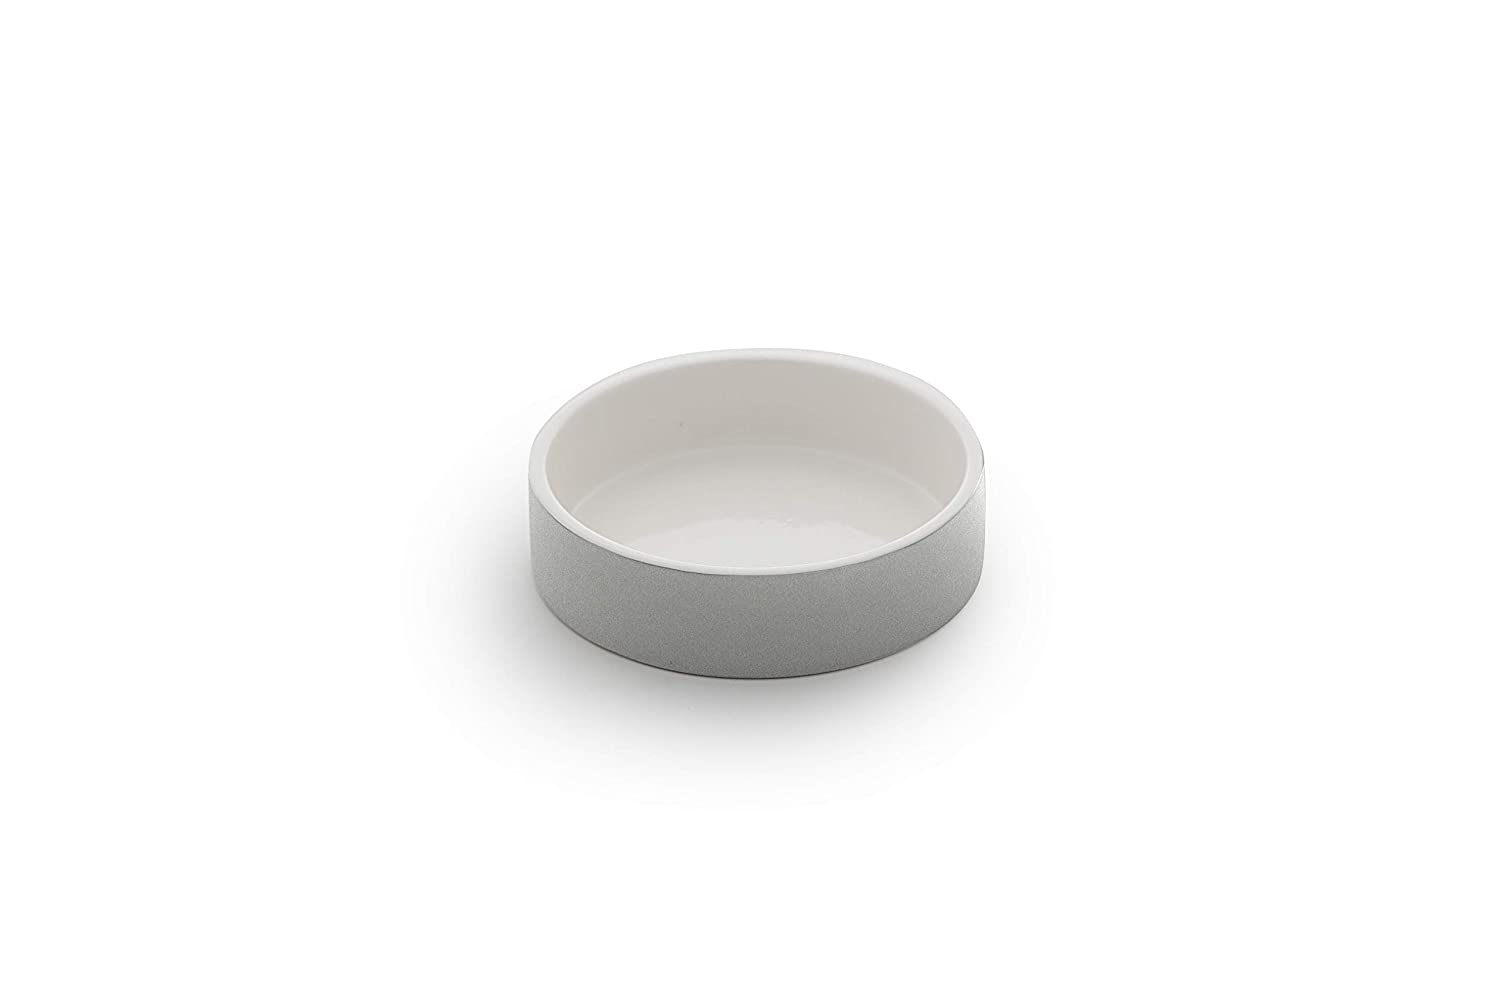 MAGISSO Dog cat Bowl Cooling Ceramic Technology | Naturally Cooling Design | Keeps Water Chilled and hygienic for Hours (Small, Grey)